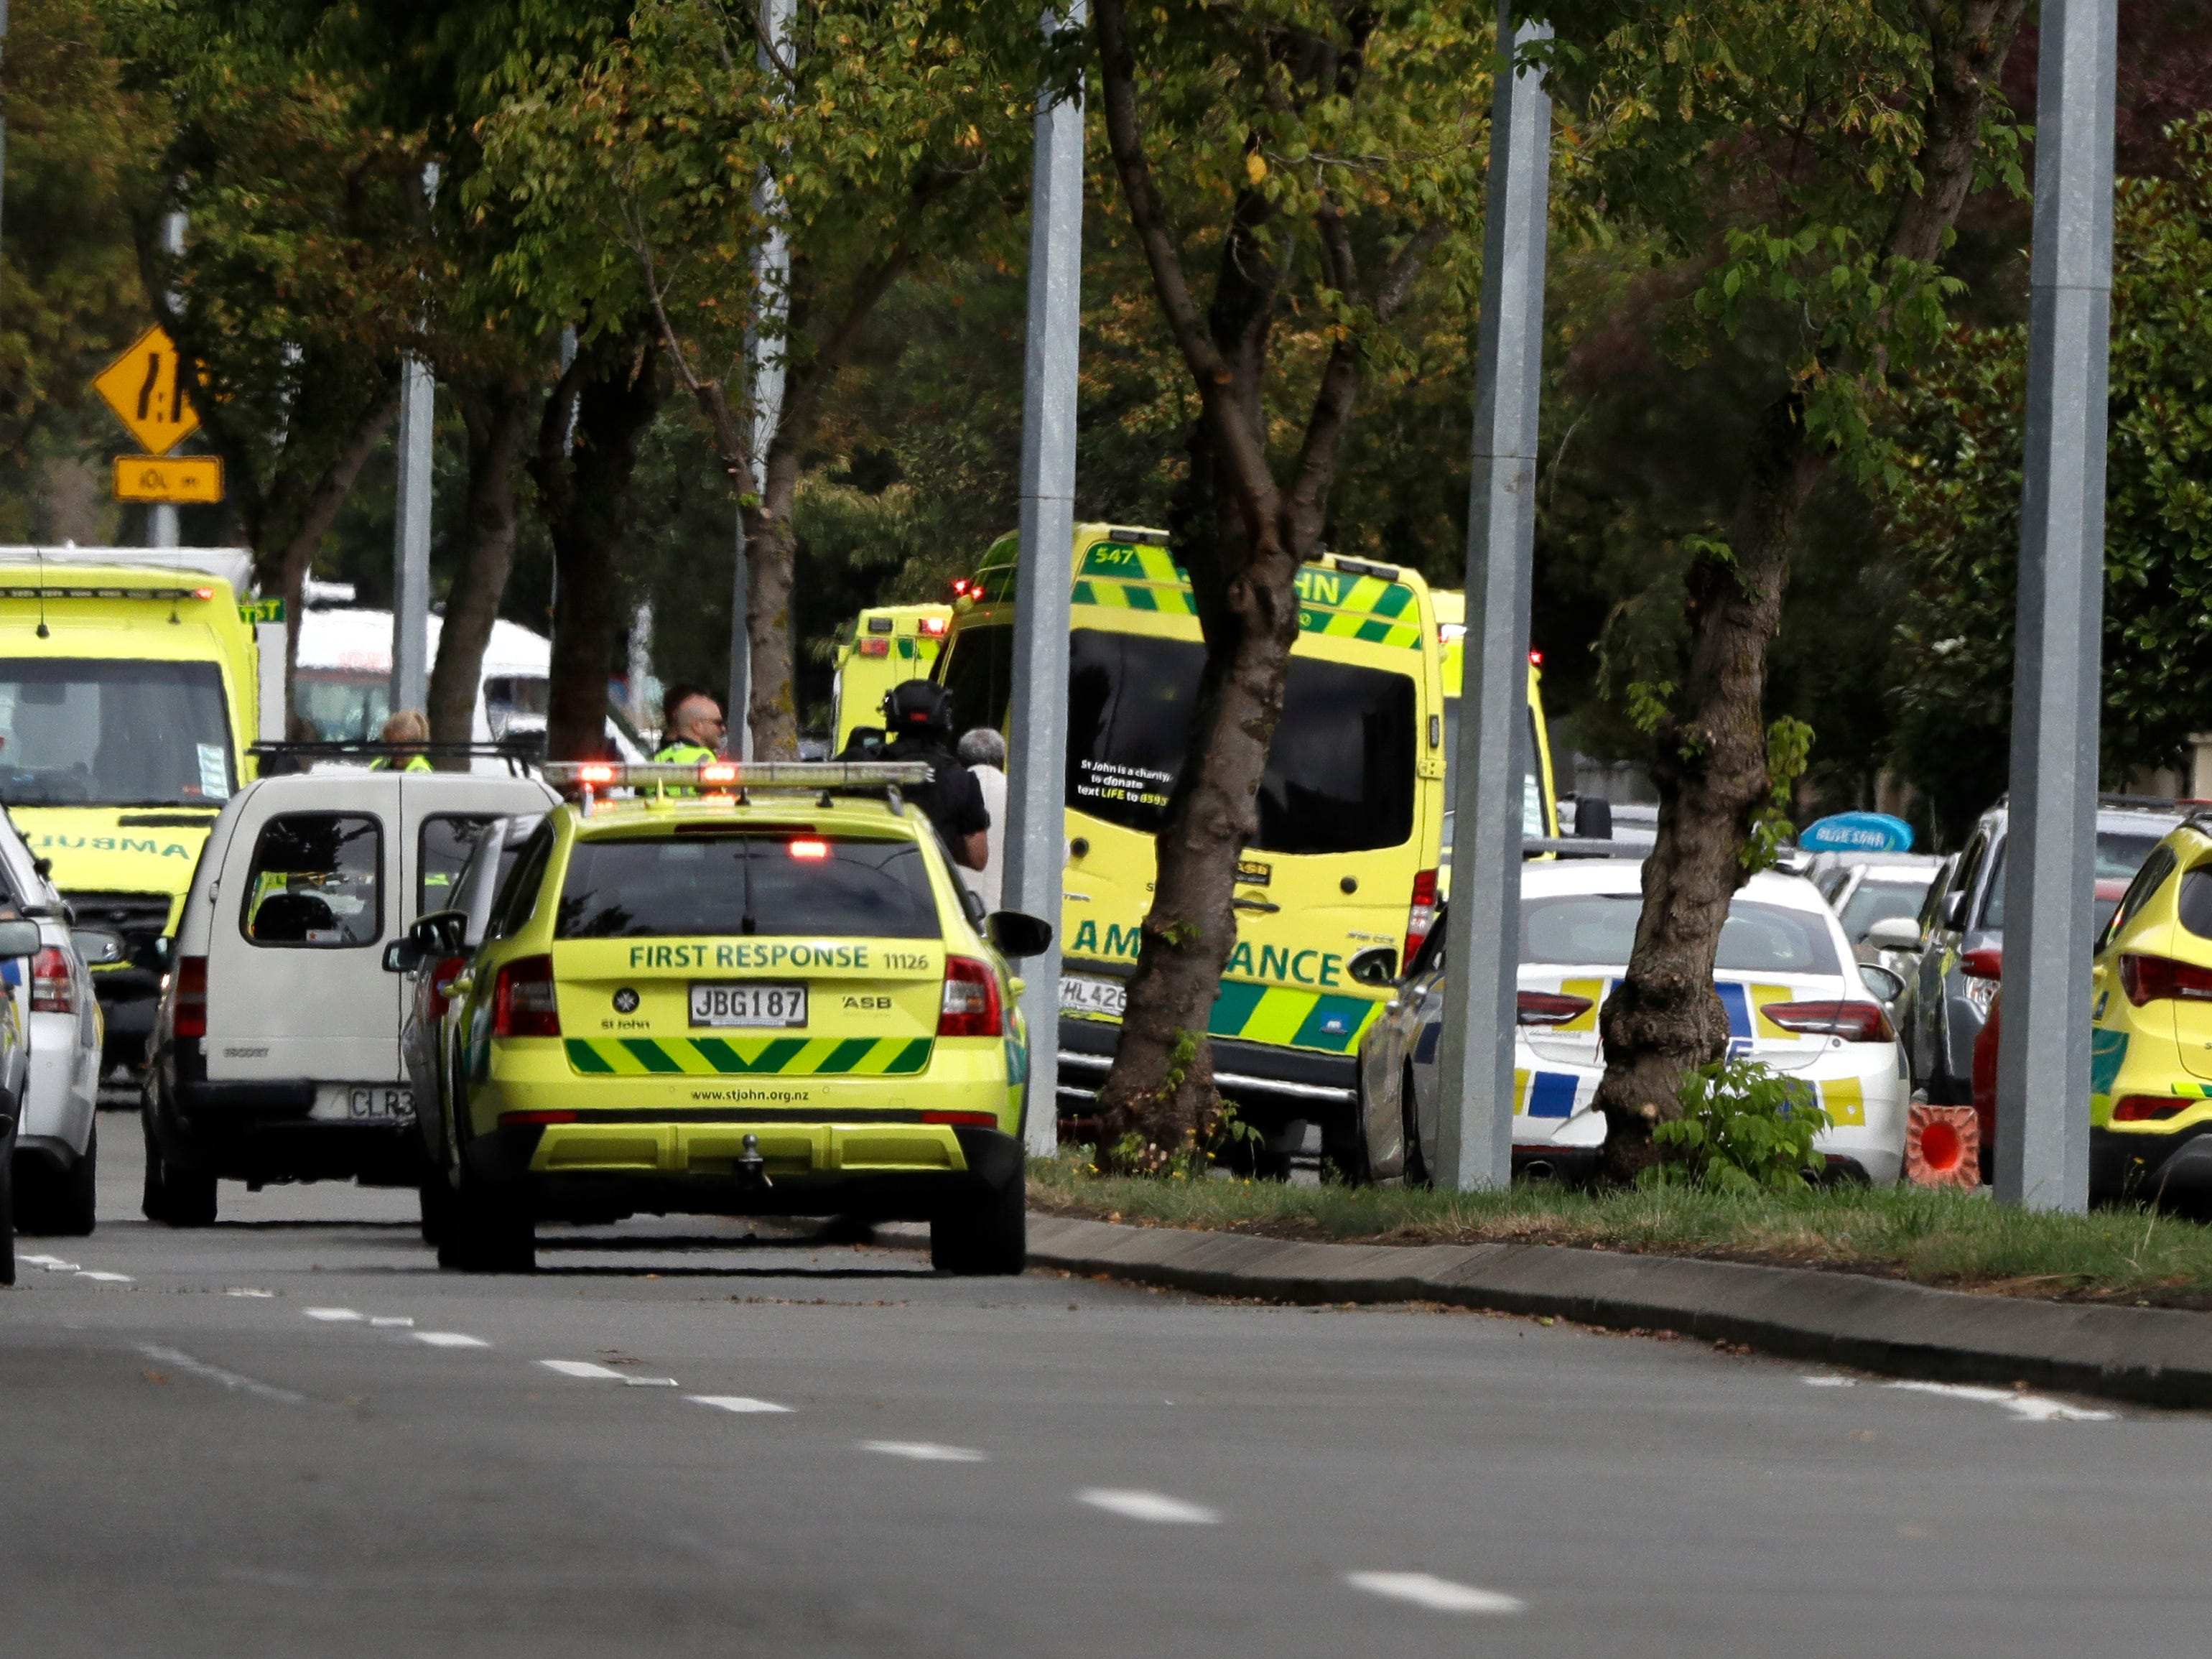 Ambulances are pictured parking outside a mosque in central Christchurch, New Zealand.